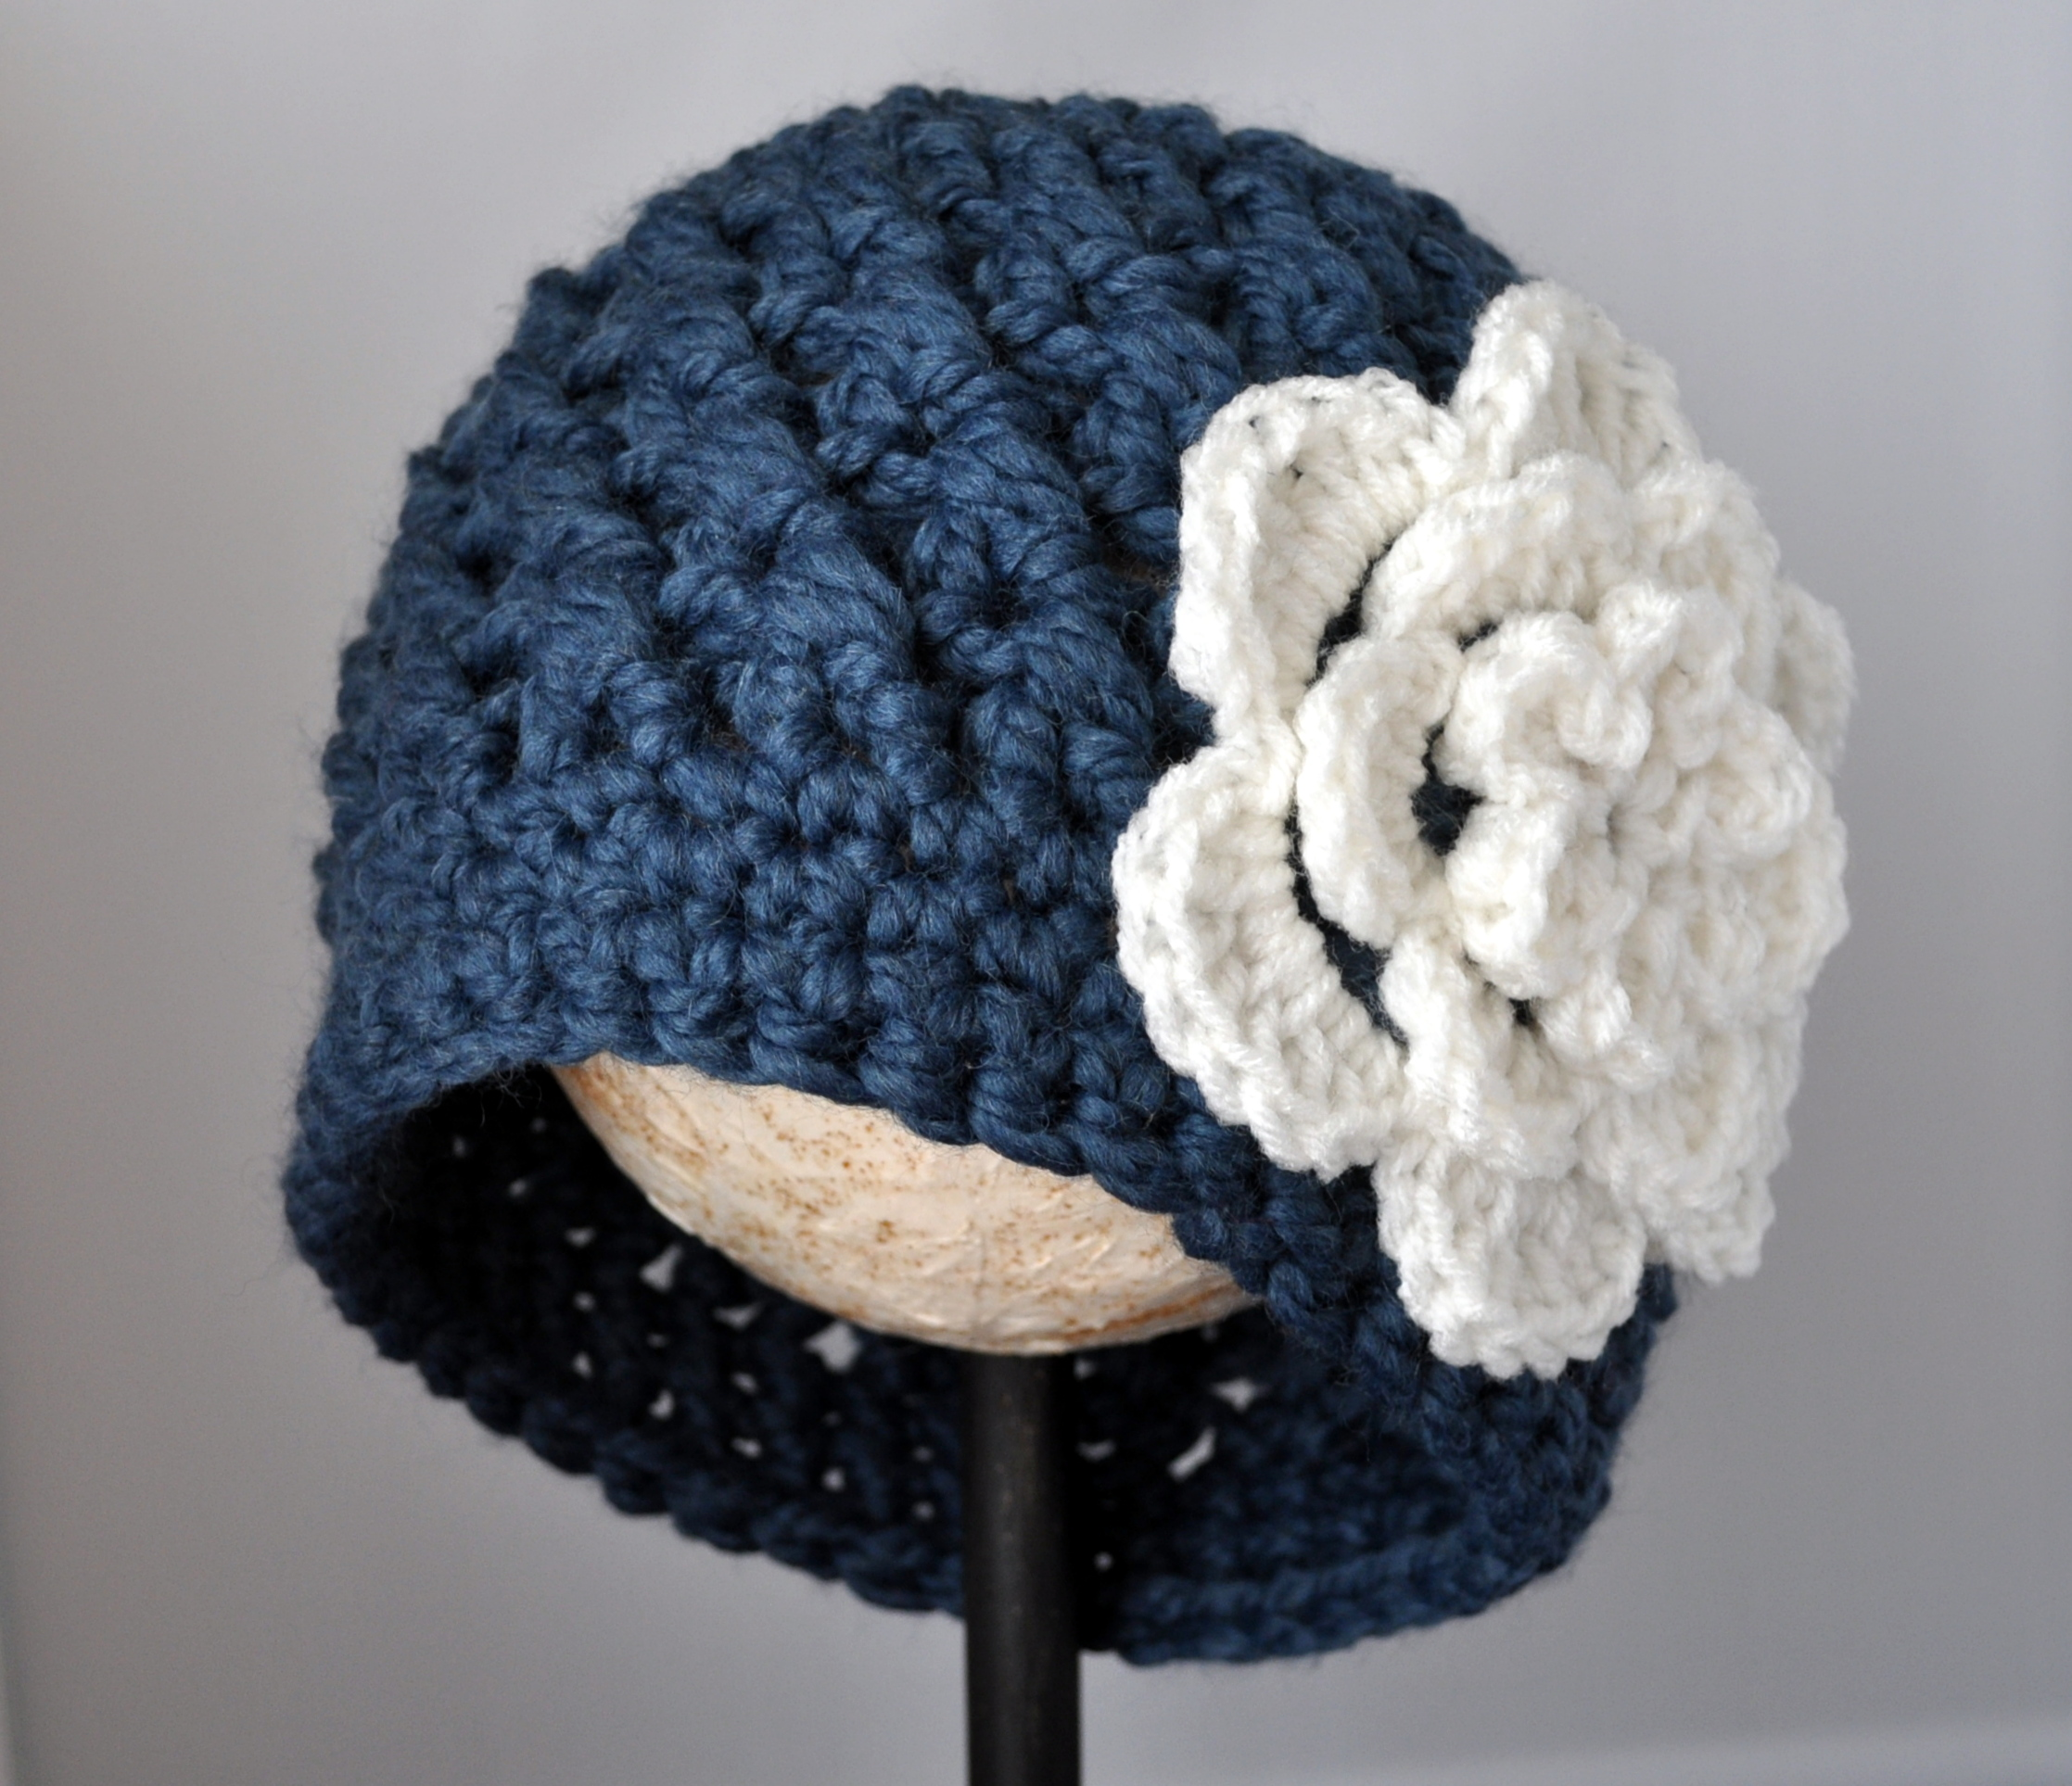 Crochet Hat Pattern Super Bulky Yarn : Crochet Chunky Flowered Cloche Pattern Classy Crochet